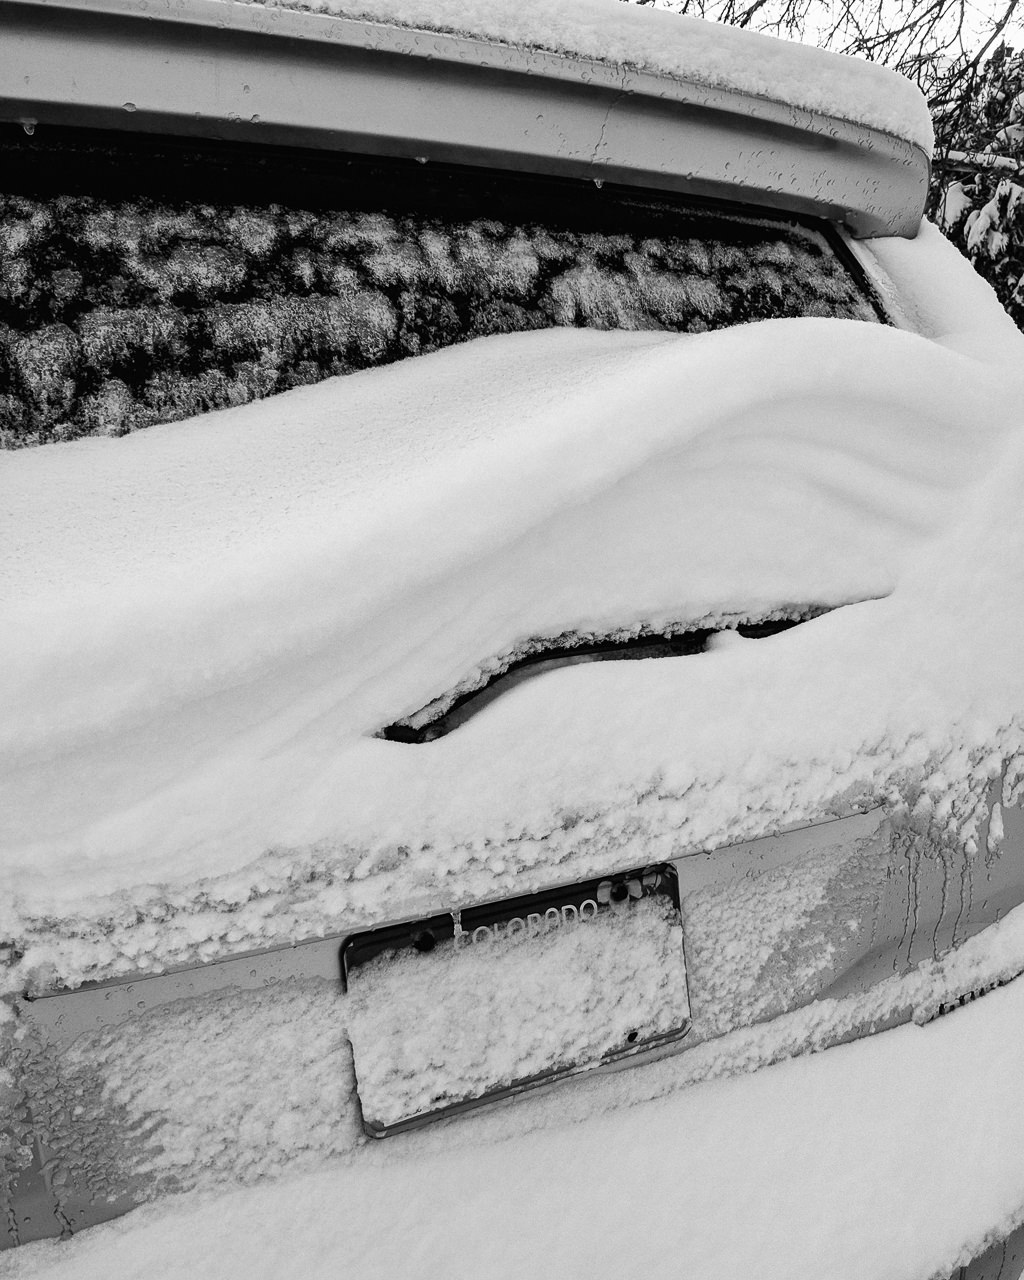 Day 104 - 365 Day B&W Photo Challenge - Their wasn't that much snow here from the Bomb Cyclone Pt2, but it start off wet, drift and freeze over last night. You can see the drifting and ice on the back of my 4Runner's back window. - Google Pixel 3, VSCO Neopan 400 preset